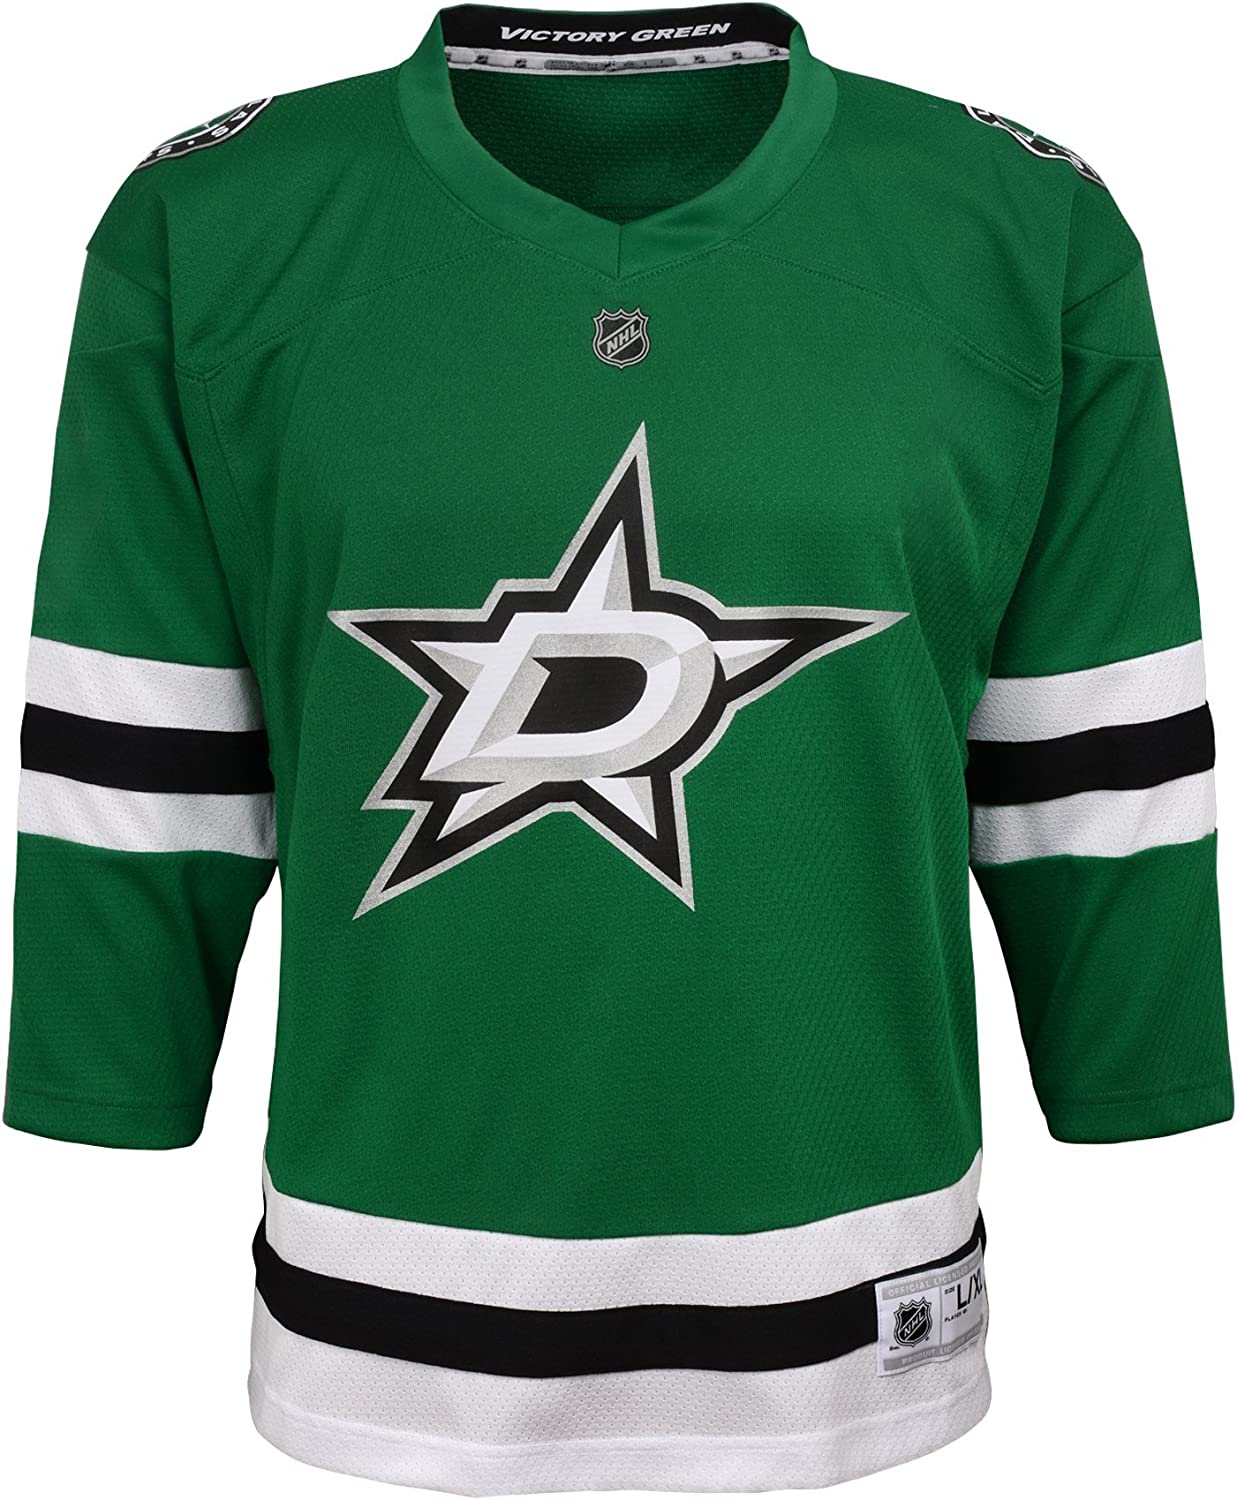 Outerstuff Toddler NHL Replica Jersey-home